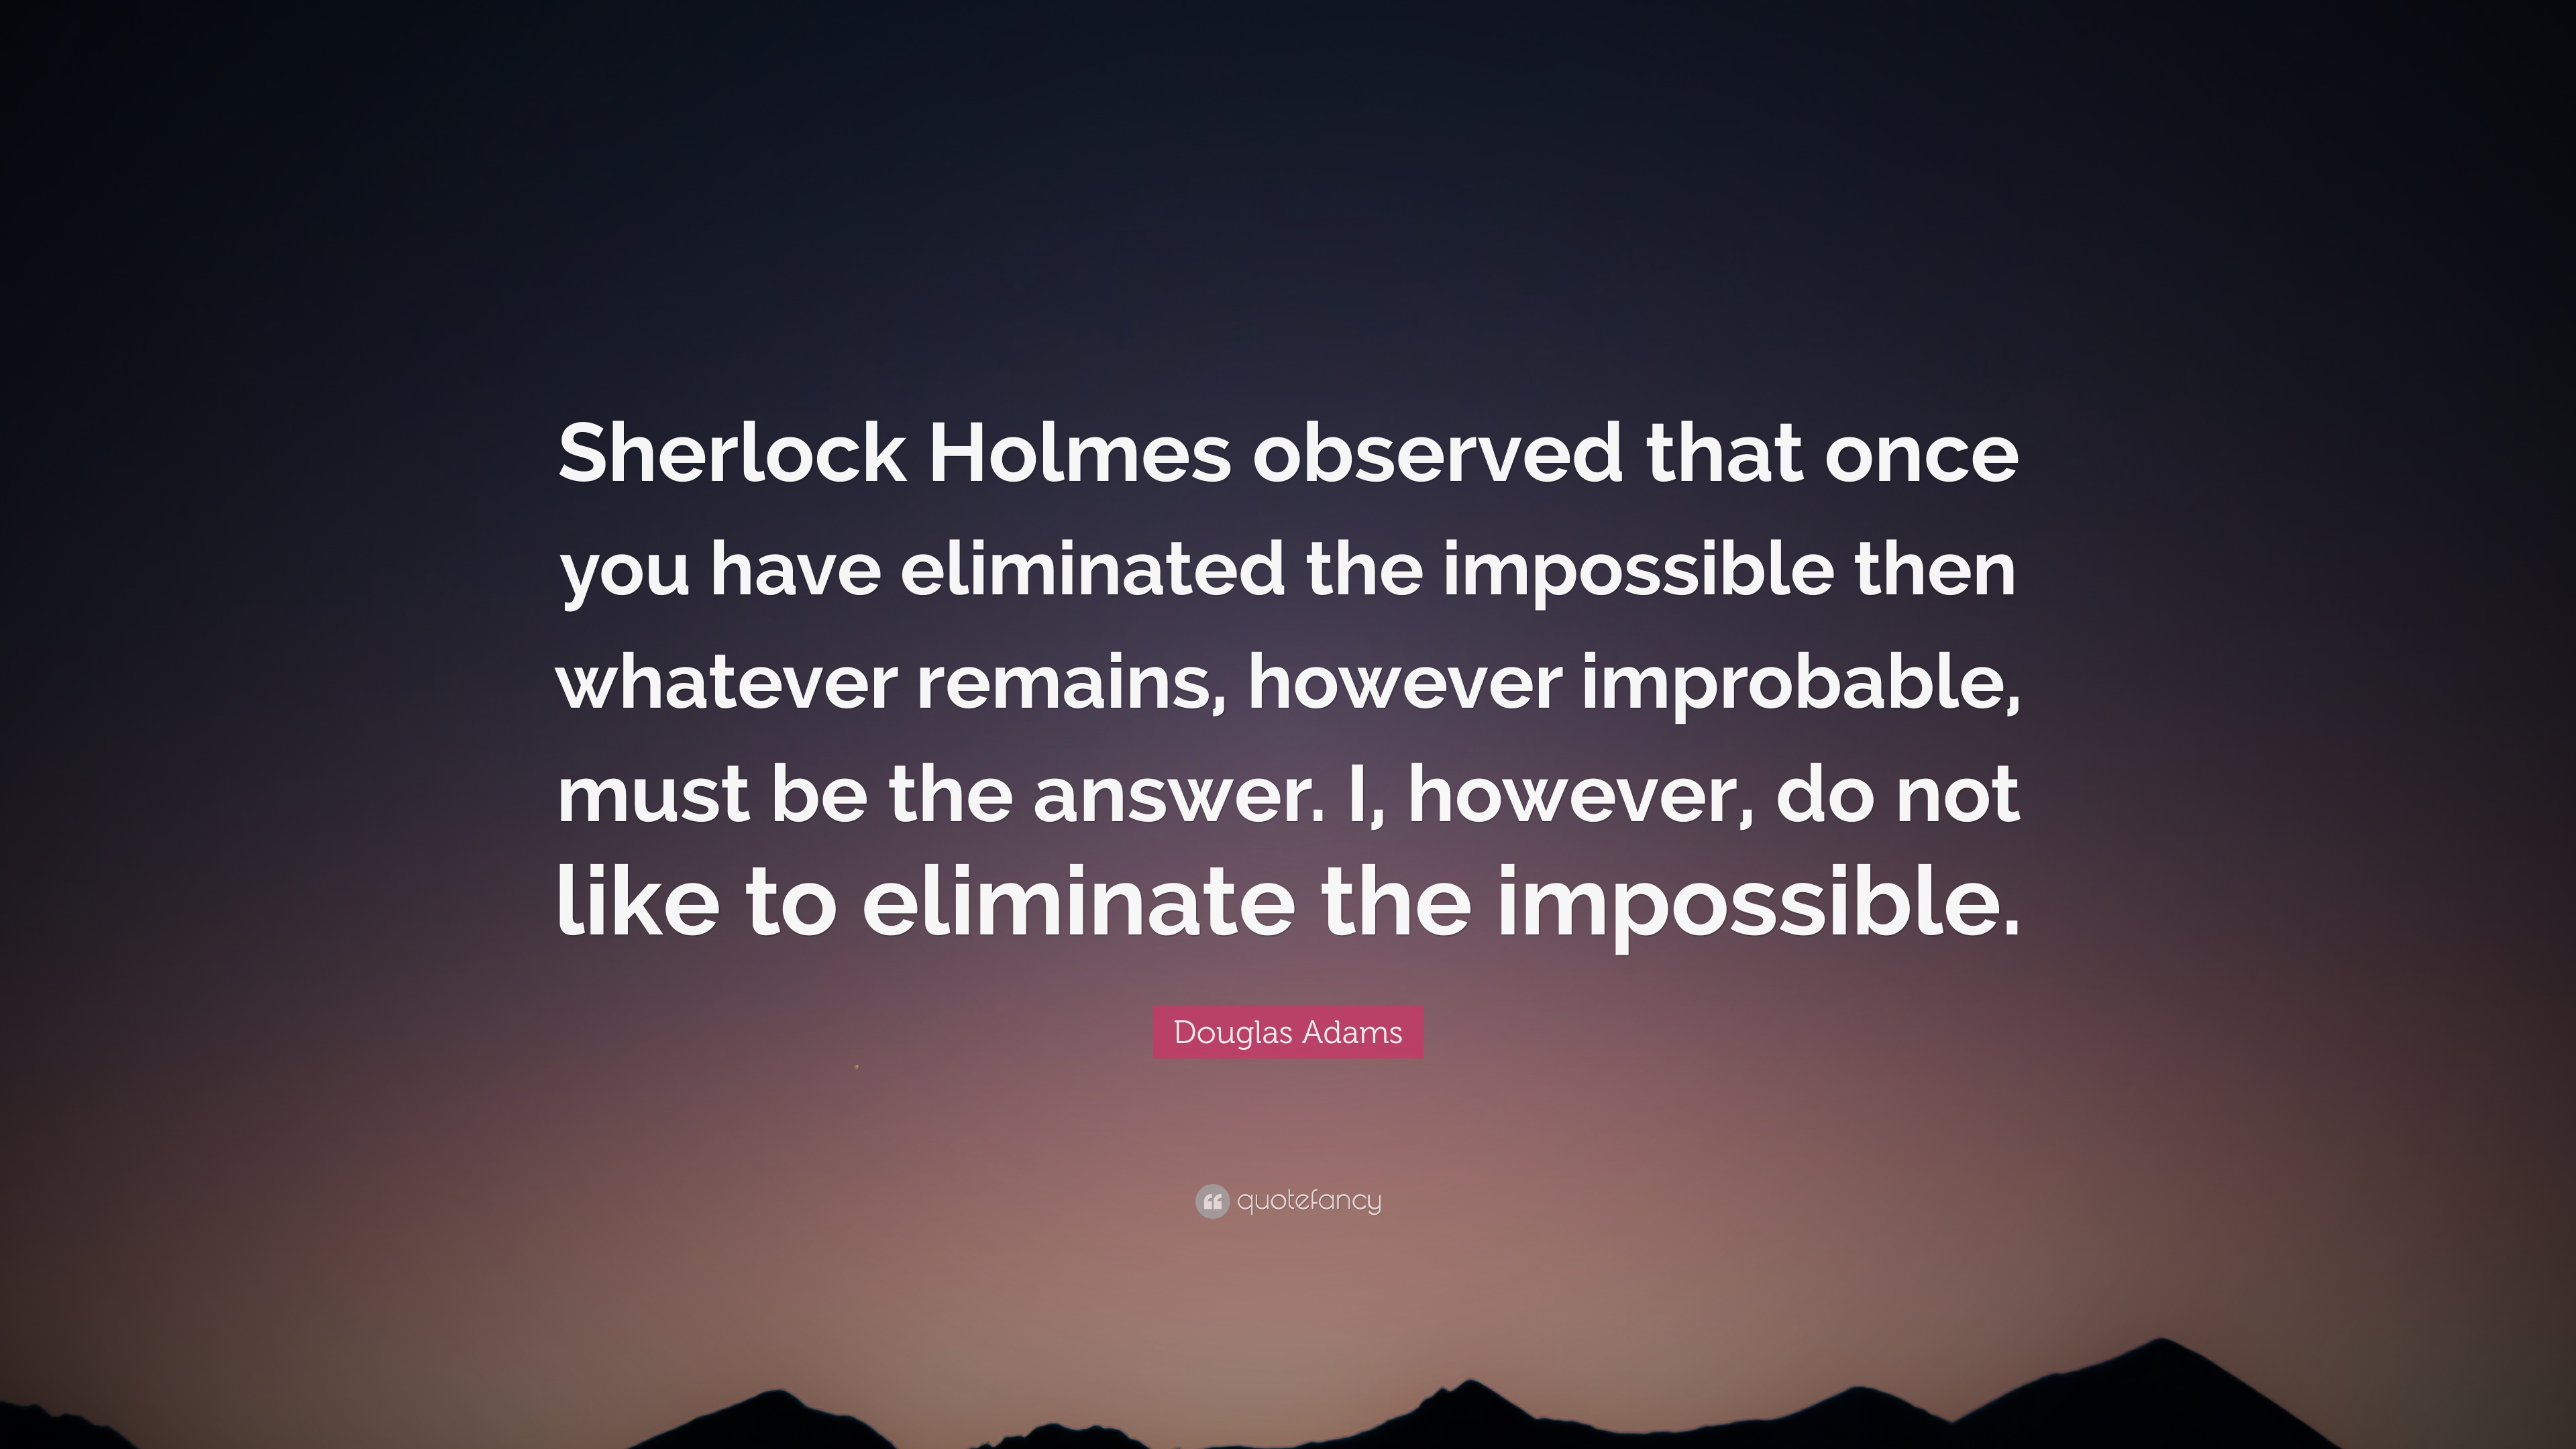 Sherlock Holmes Quotes Wallpaper Douglas Adams Quote Sherlock Holmes Observed That Once